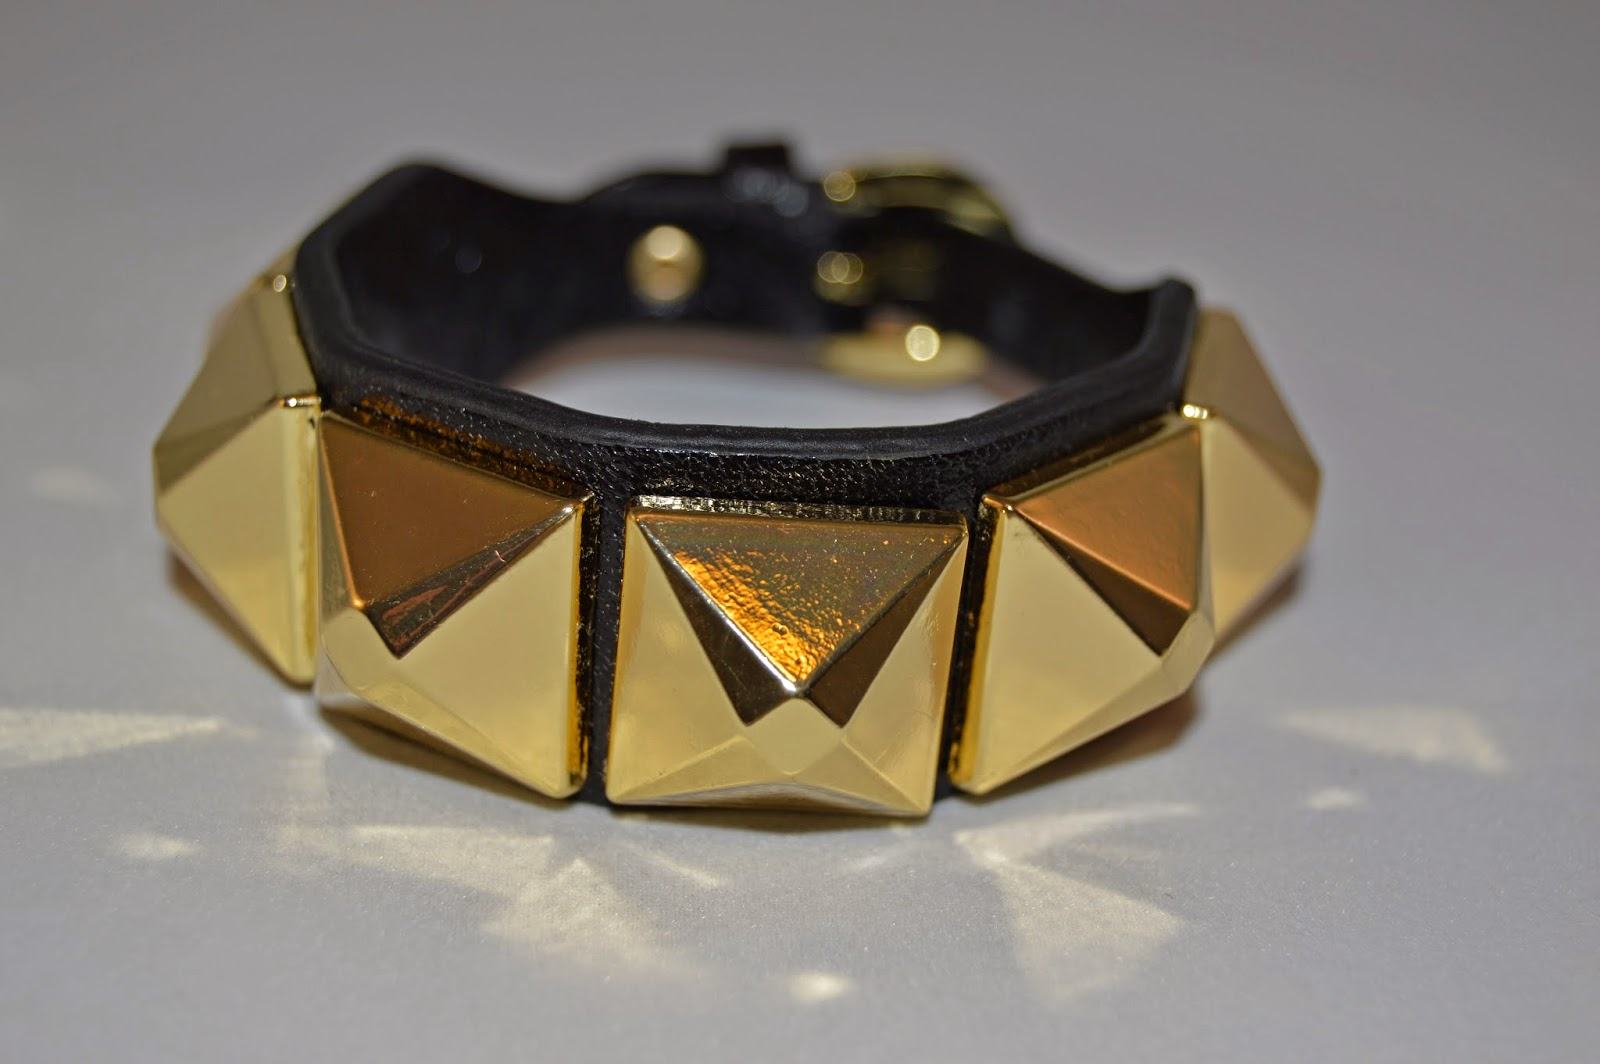 Winter Sales- Leather and Gold Studded Cuff from Banana Republic